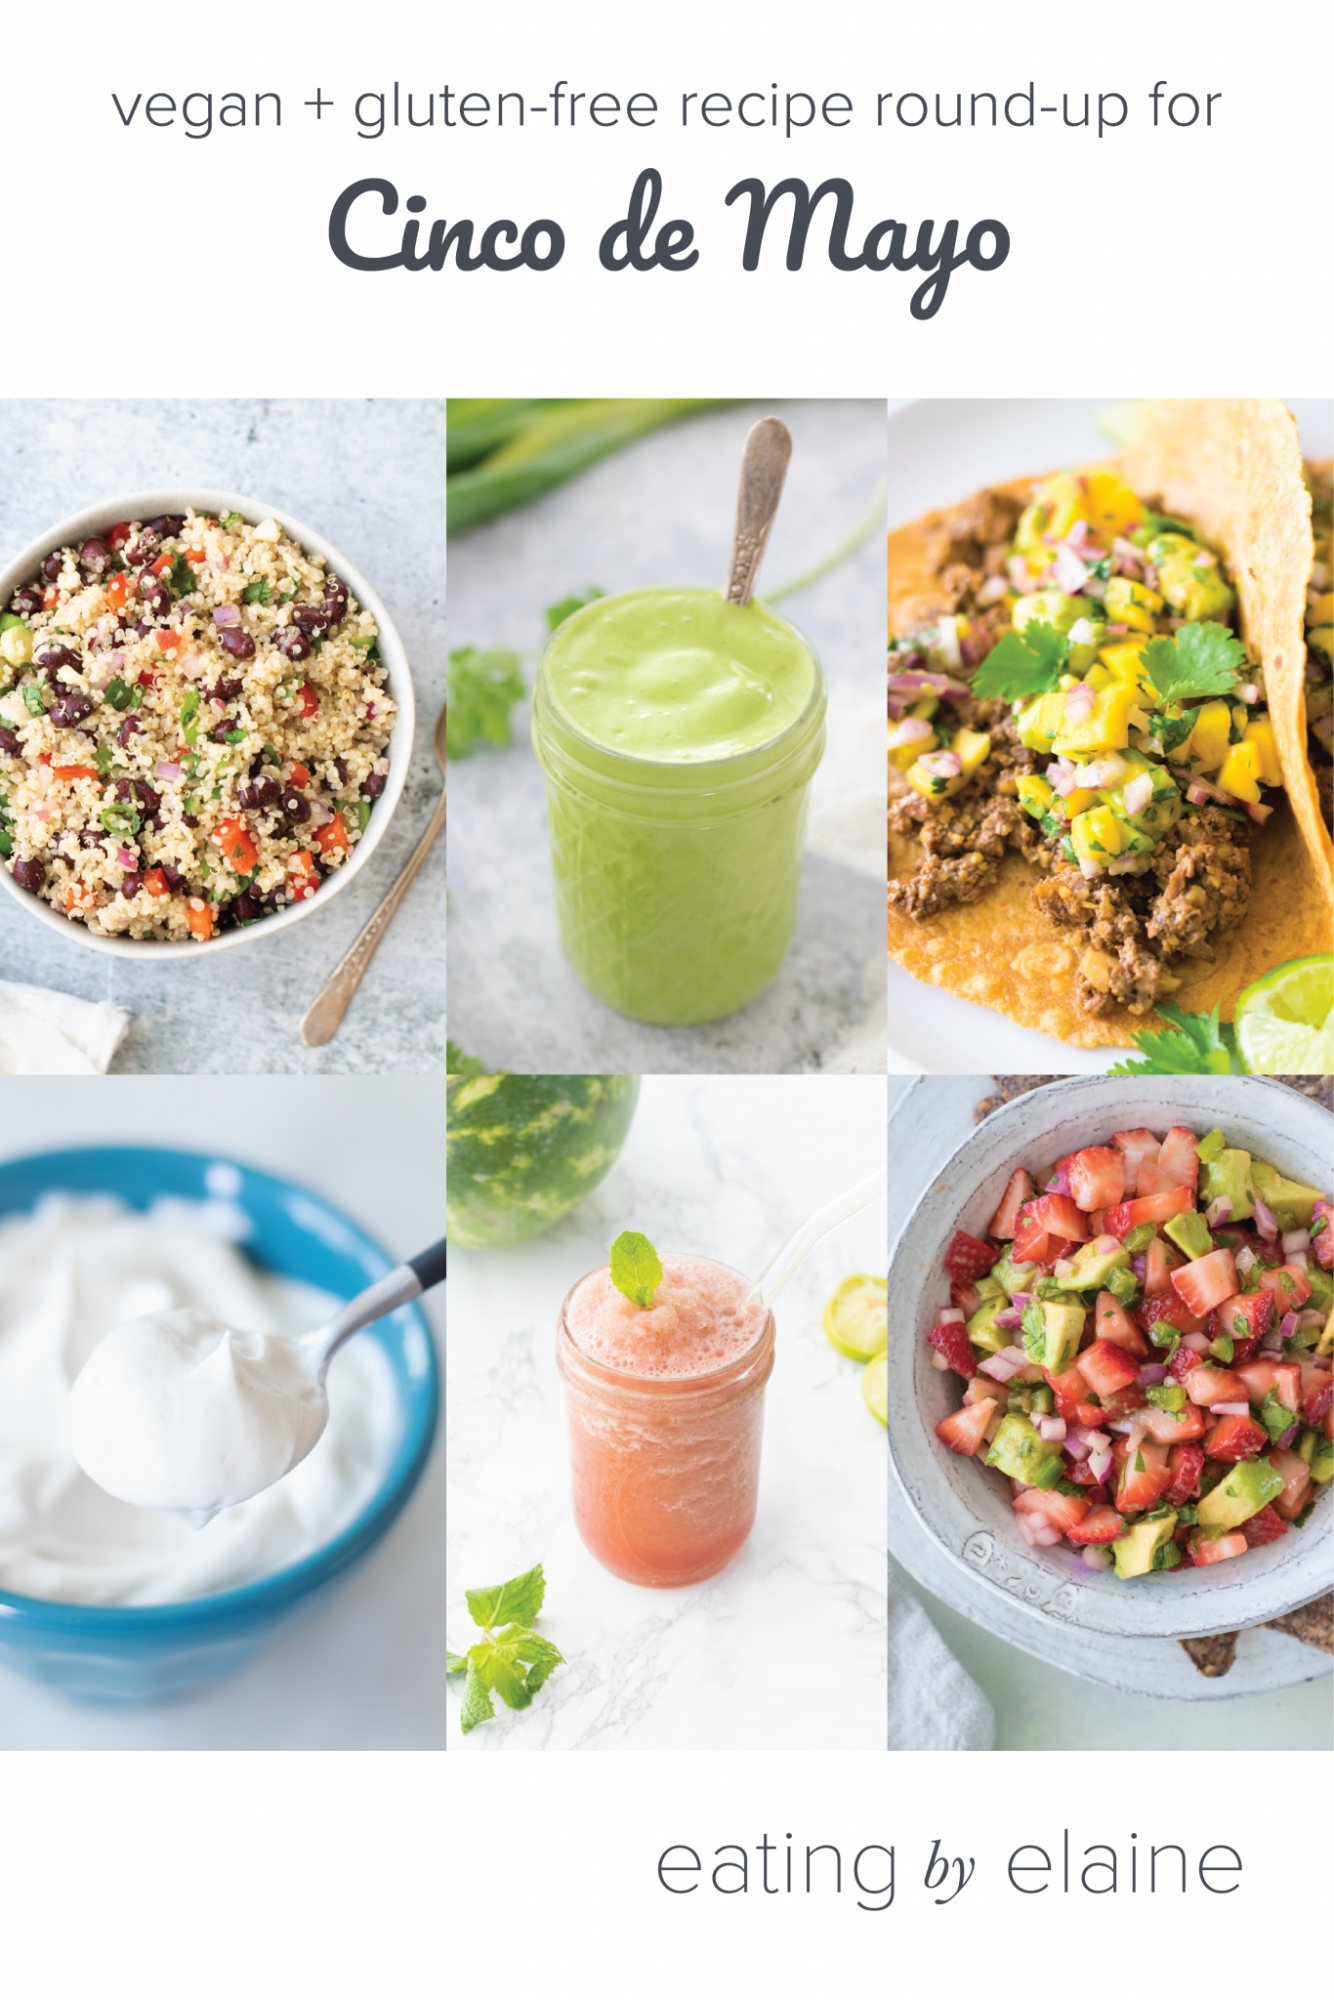 Vegan and Gluten-free Cinco de Mayo Recipe Round-Up